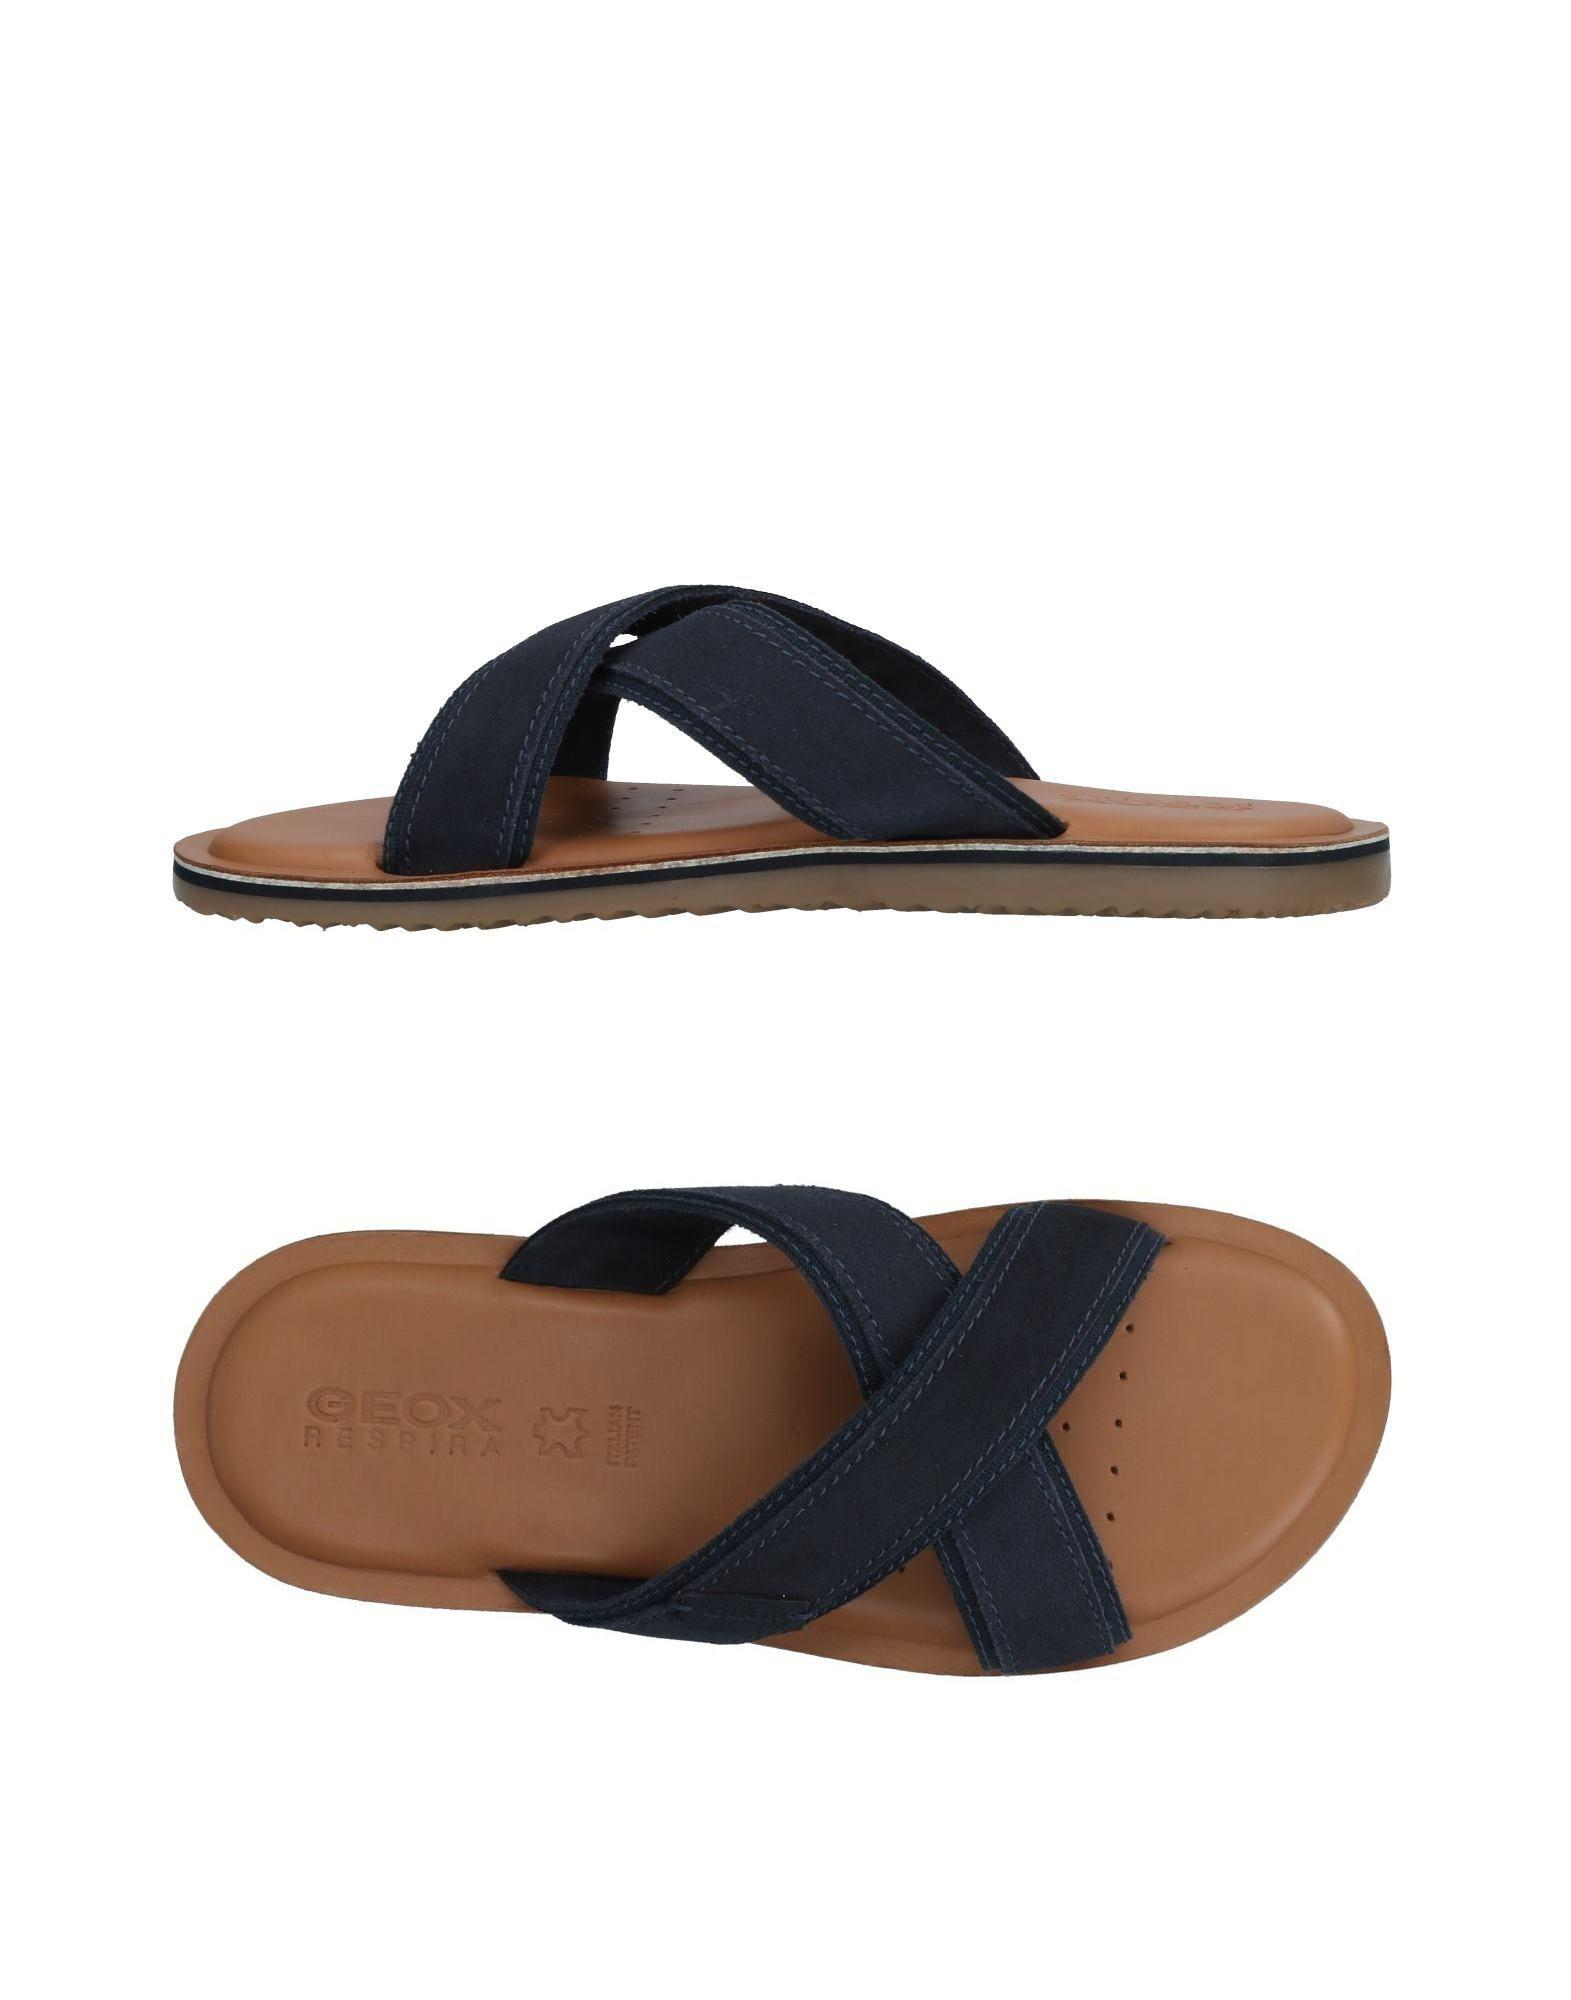 e2bc5e9ef Lyst - Geox Sandals in Blue for Men